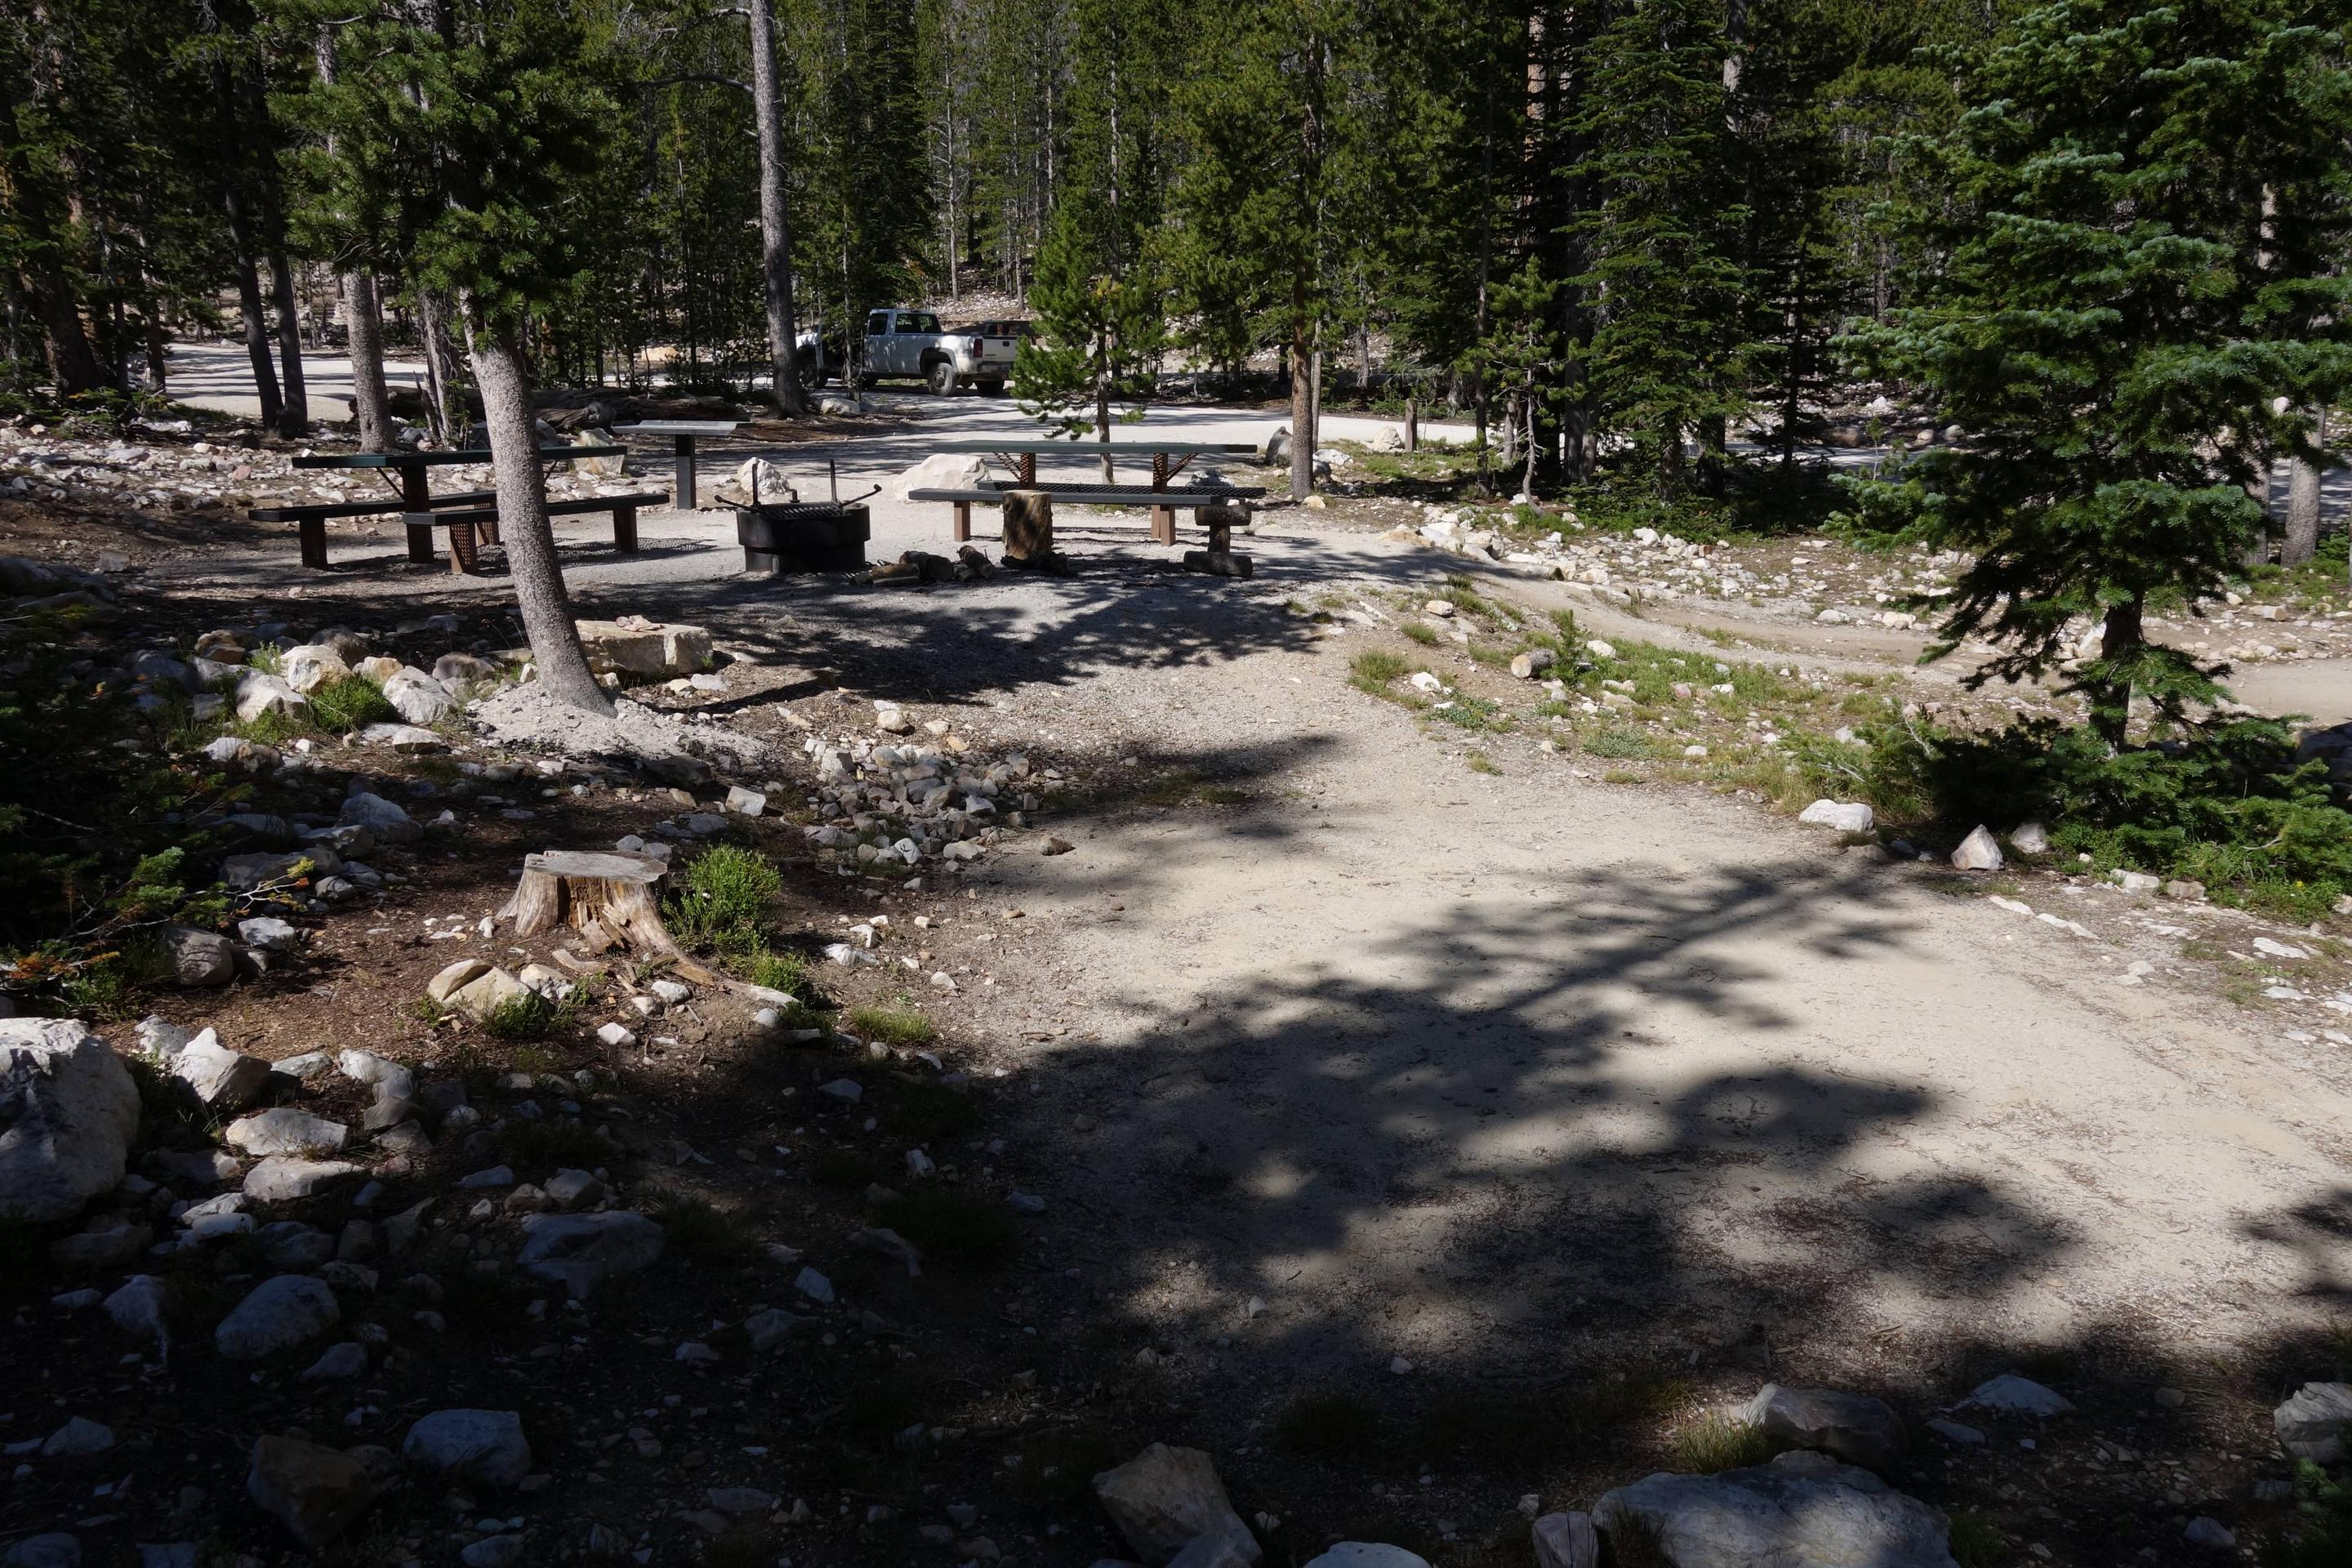 Site 3 (Double Site) - From First Tent Pad Looking Toward CampsiteFrom First Tent Pad Looking Toward Campsite